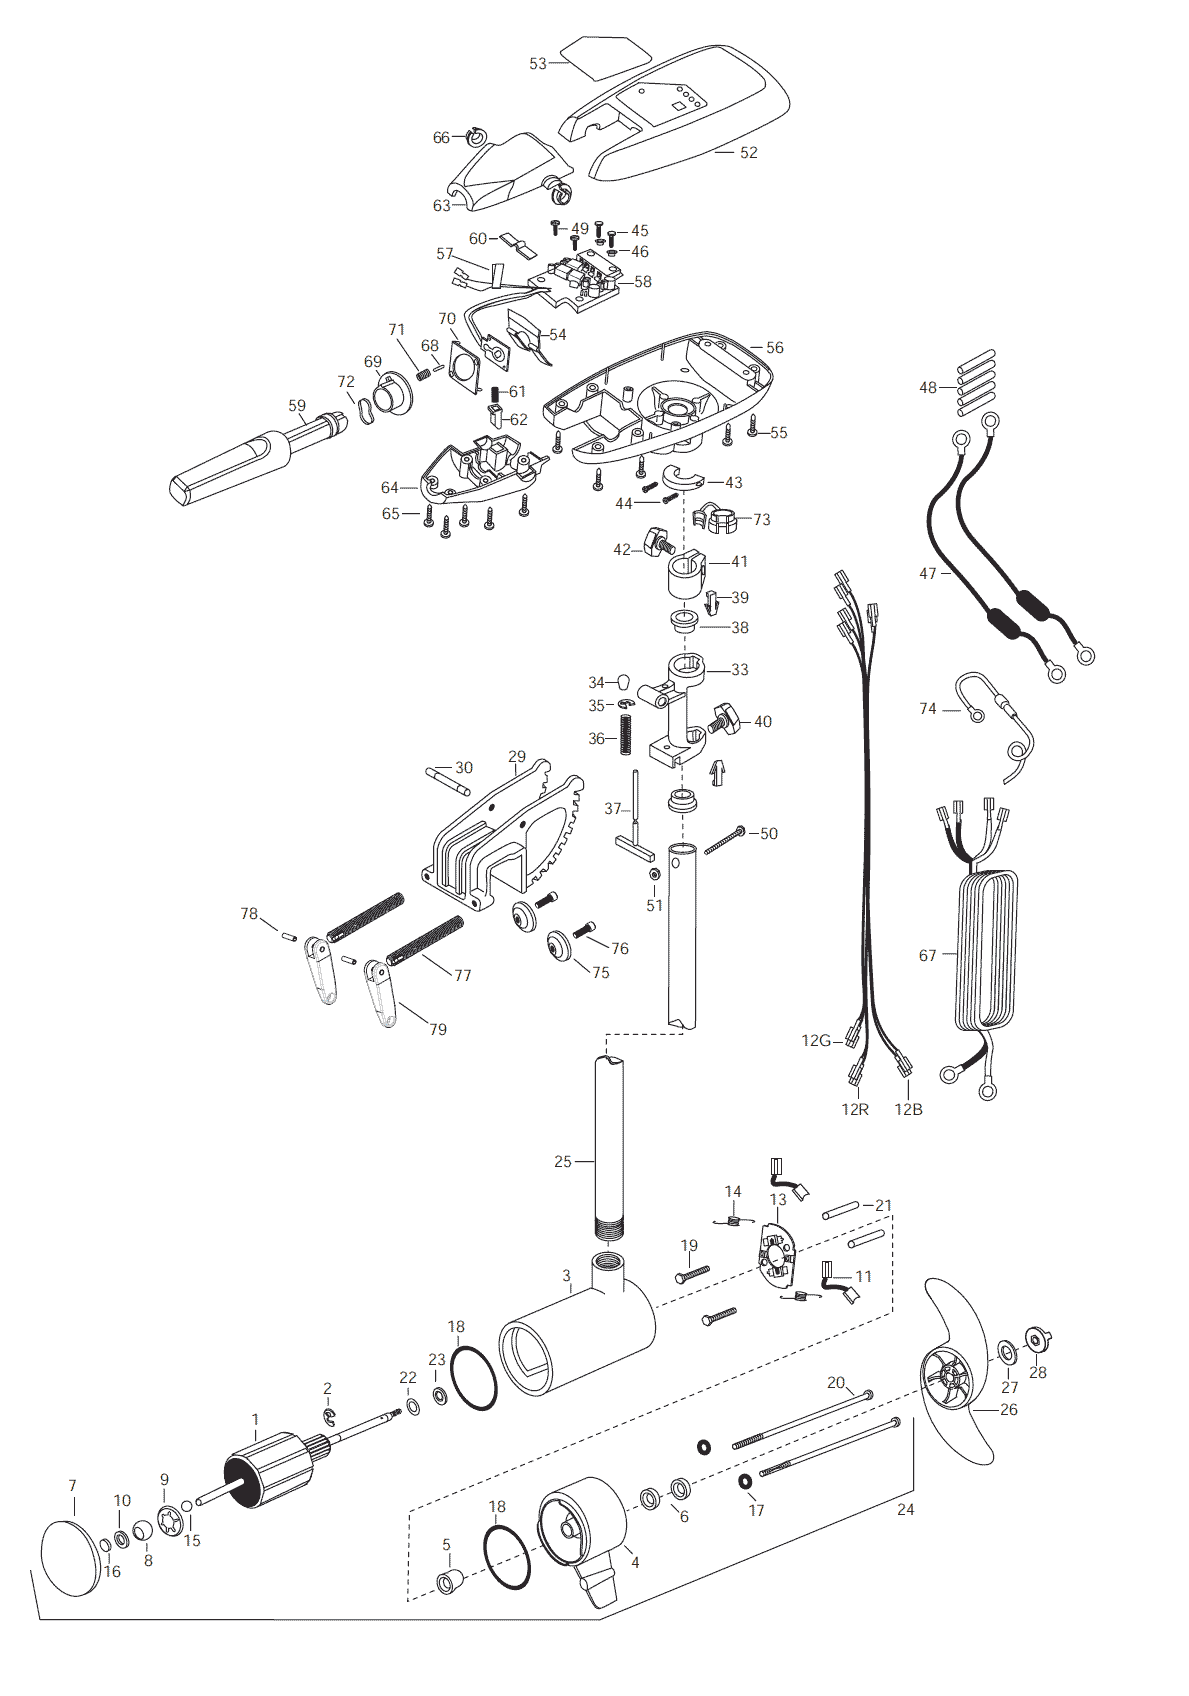 parts manual for minn kota riptide 101